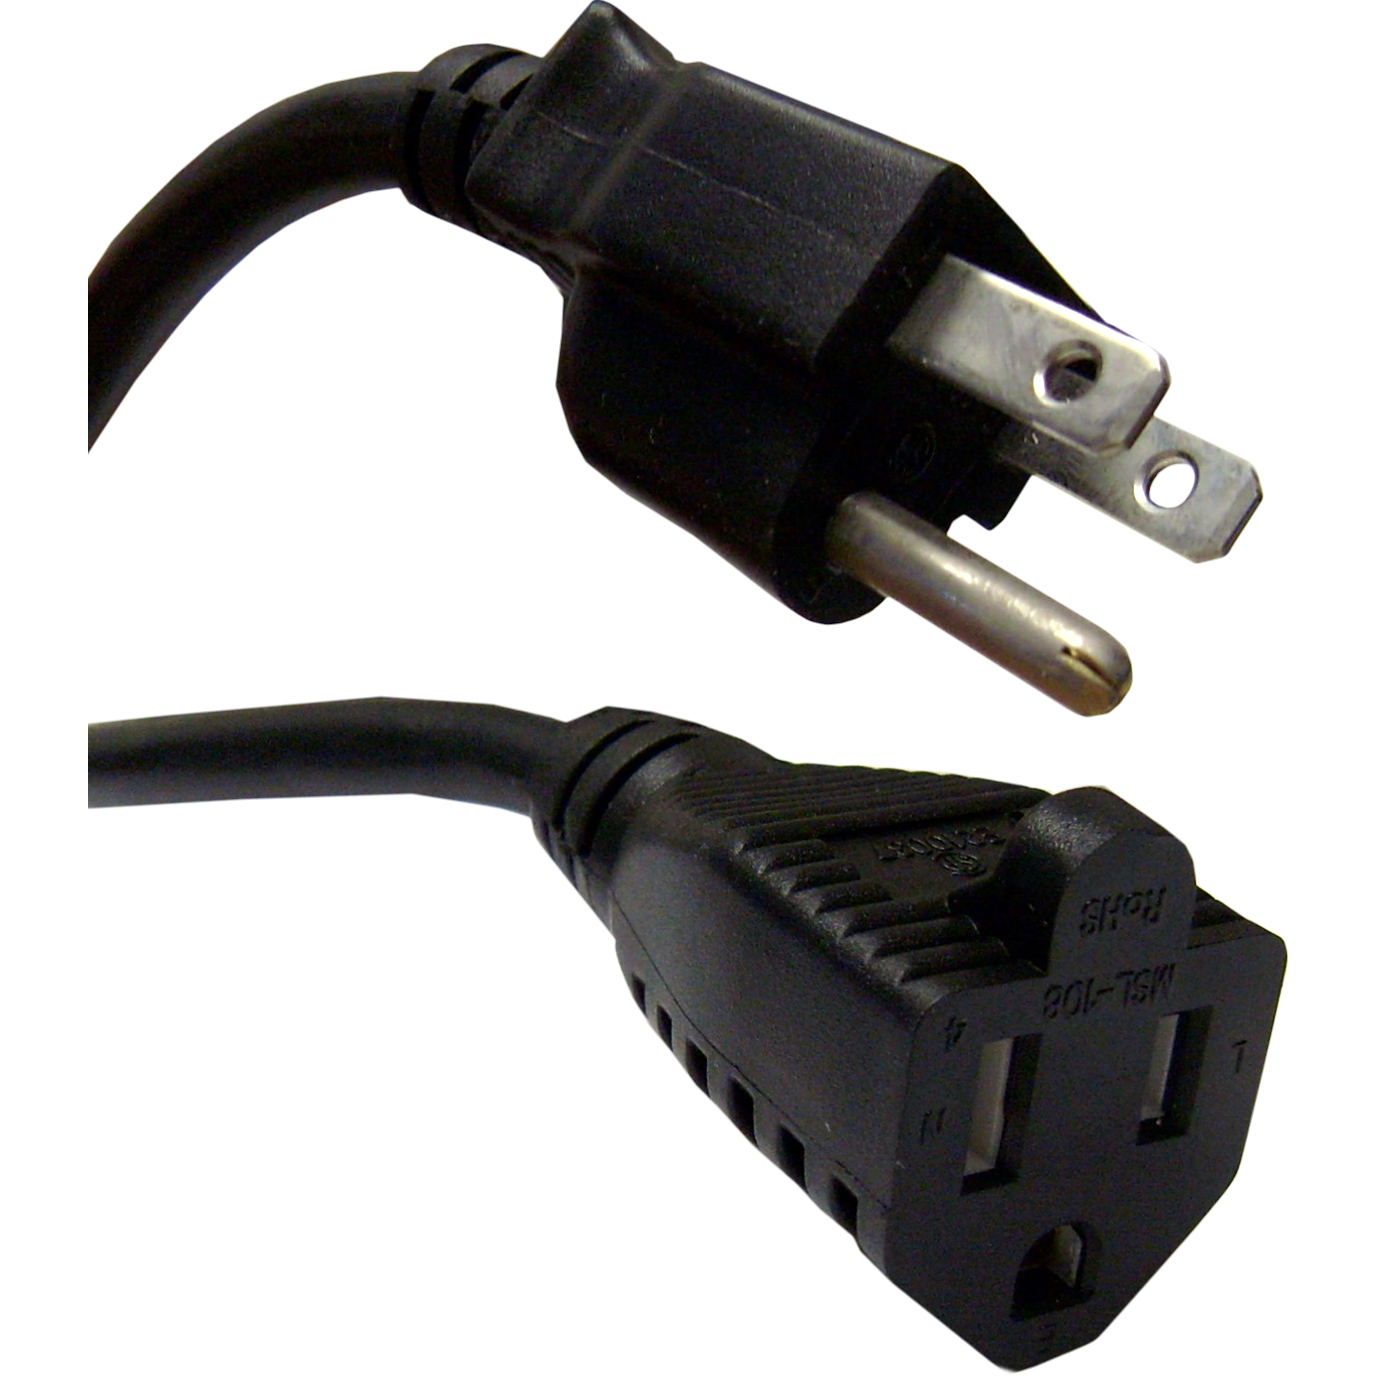 15ft Power Extension Cord Black 125v 10a